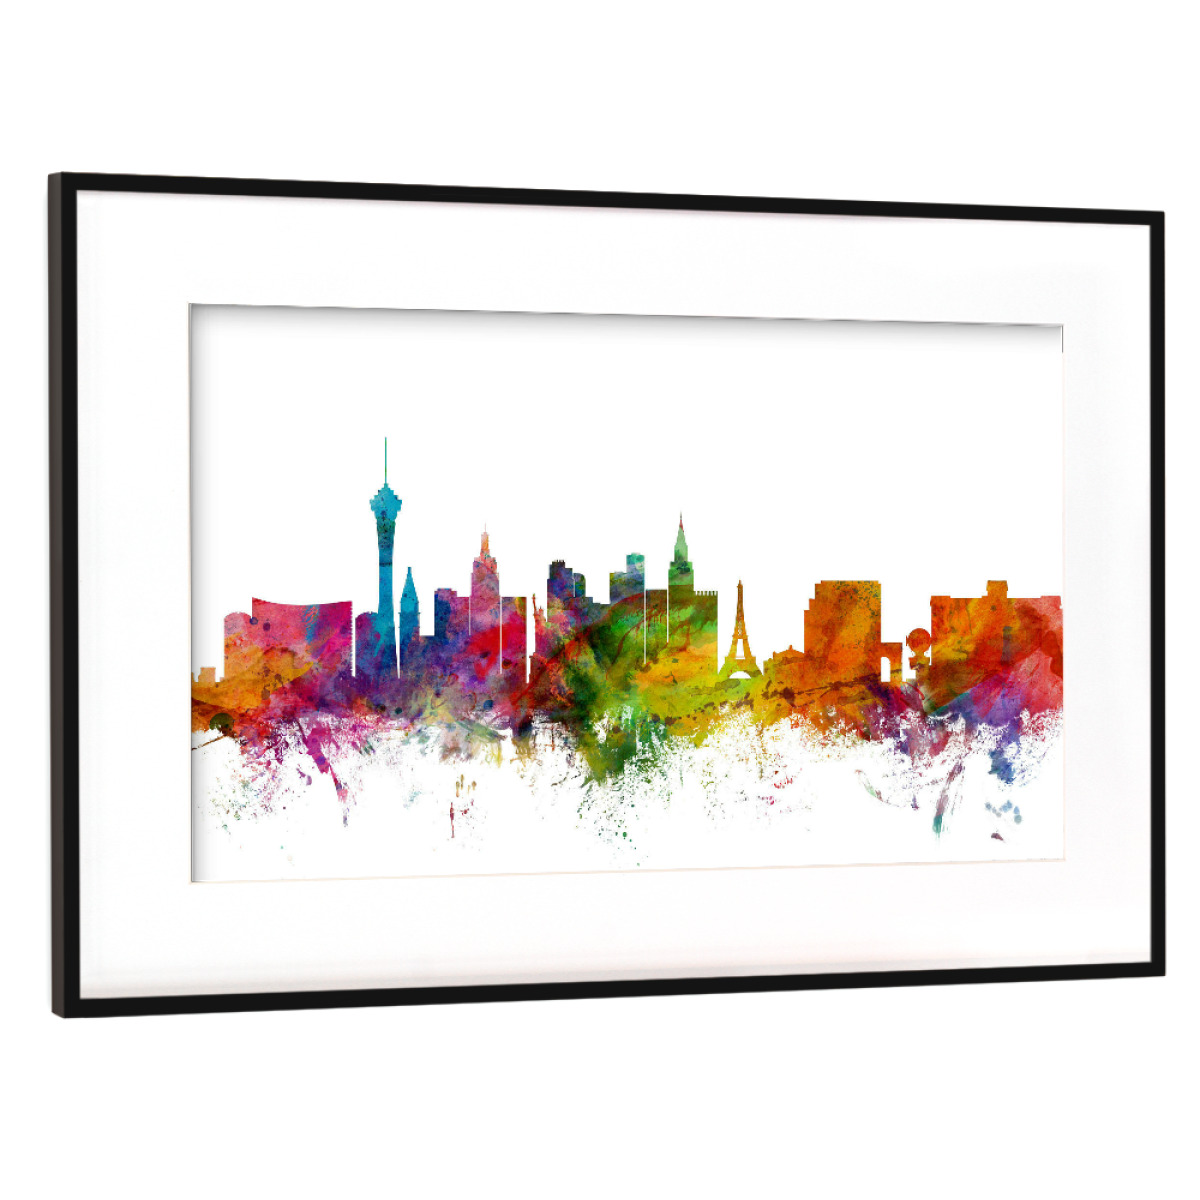 Purchase the Las Vegas Nevada Watercolor as a Frame at artboxONE